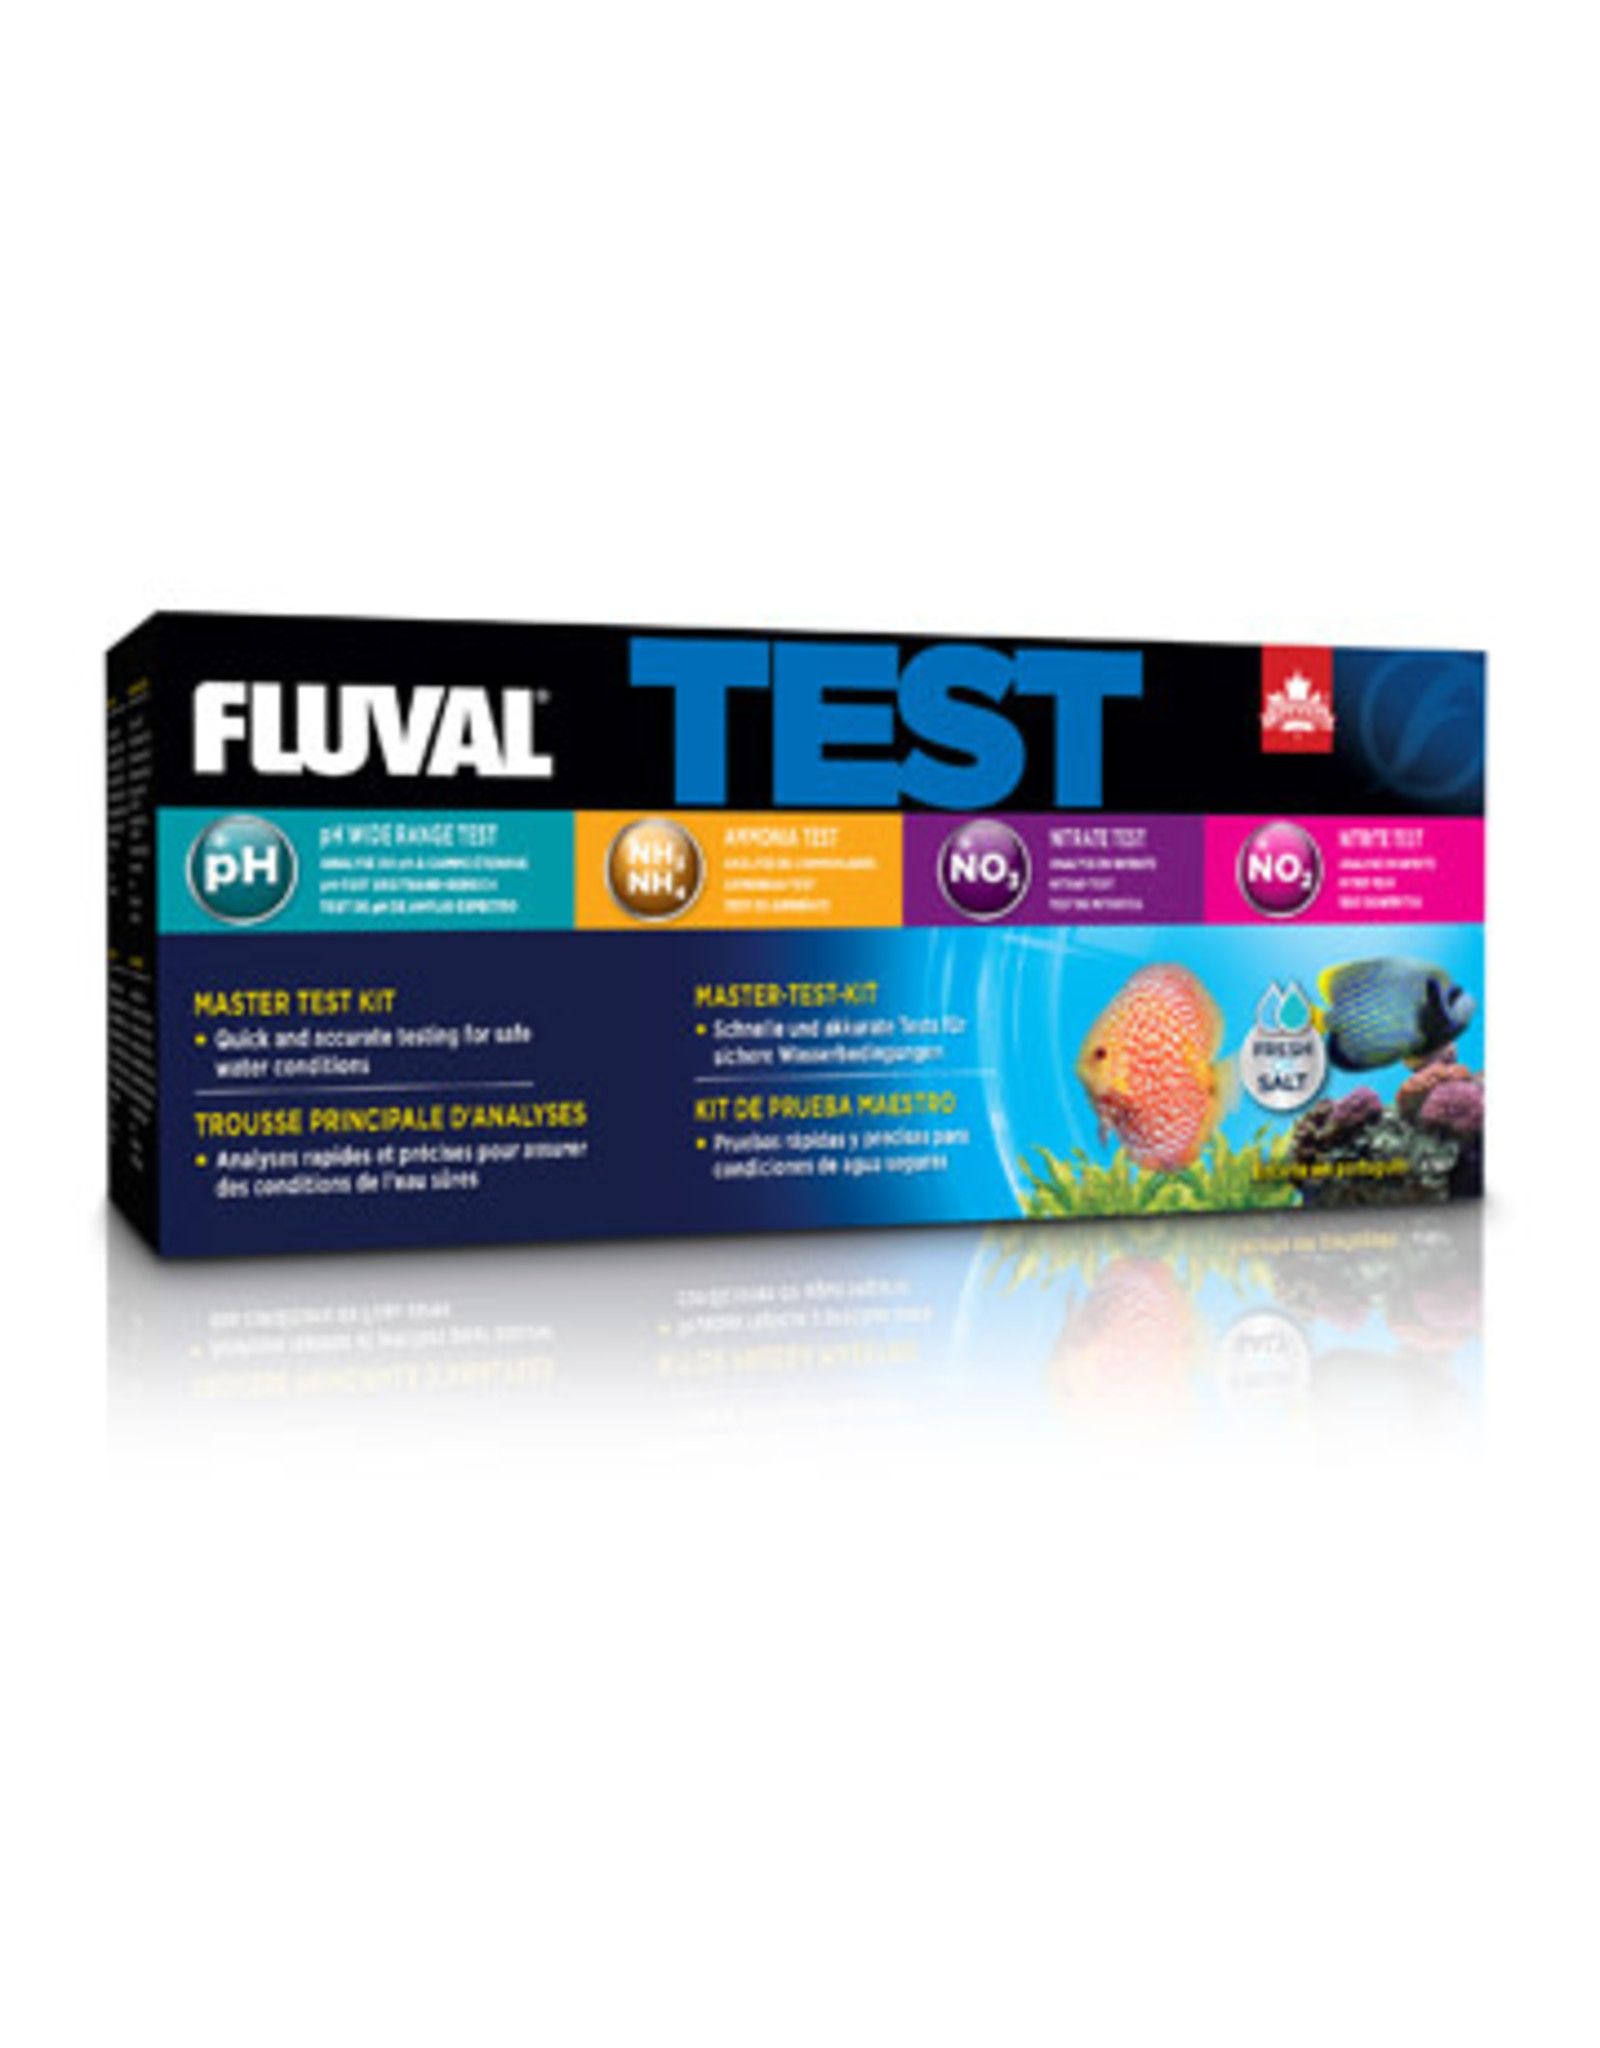 Fluval Fluval Mini Master Test Kit